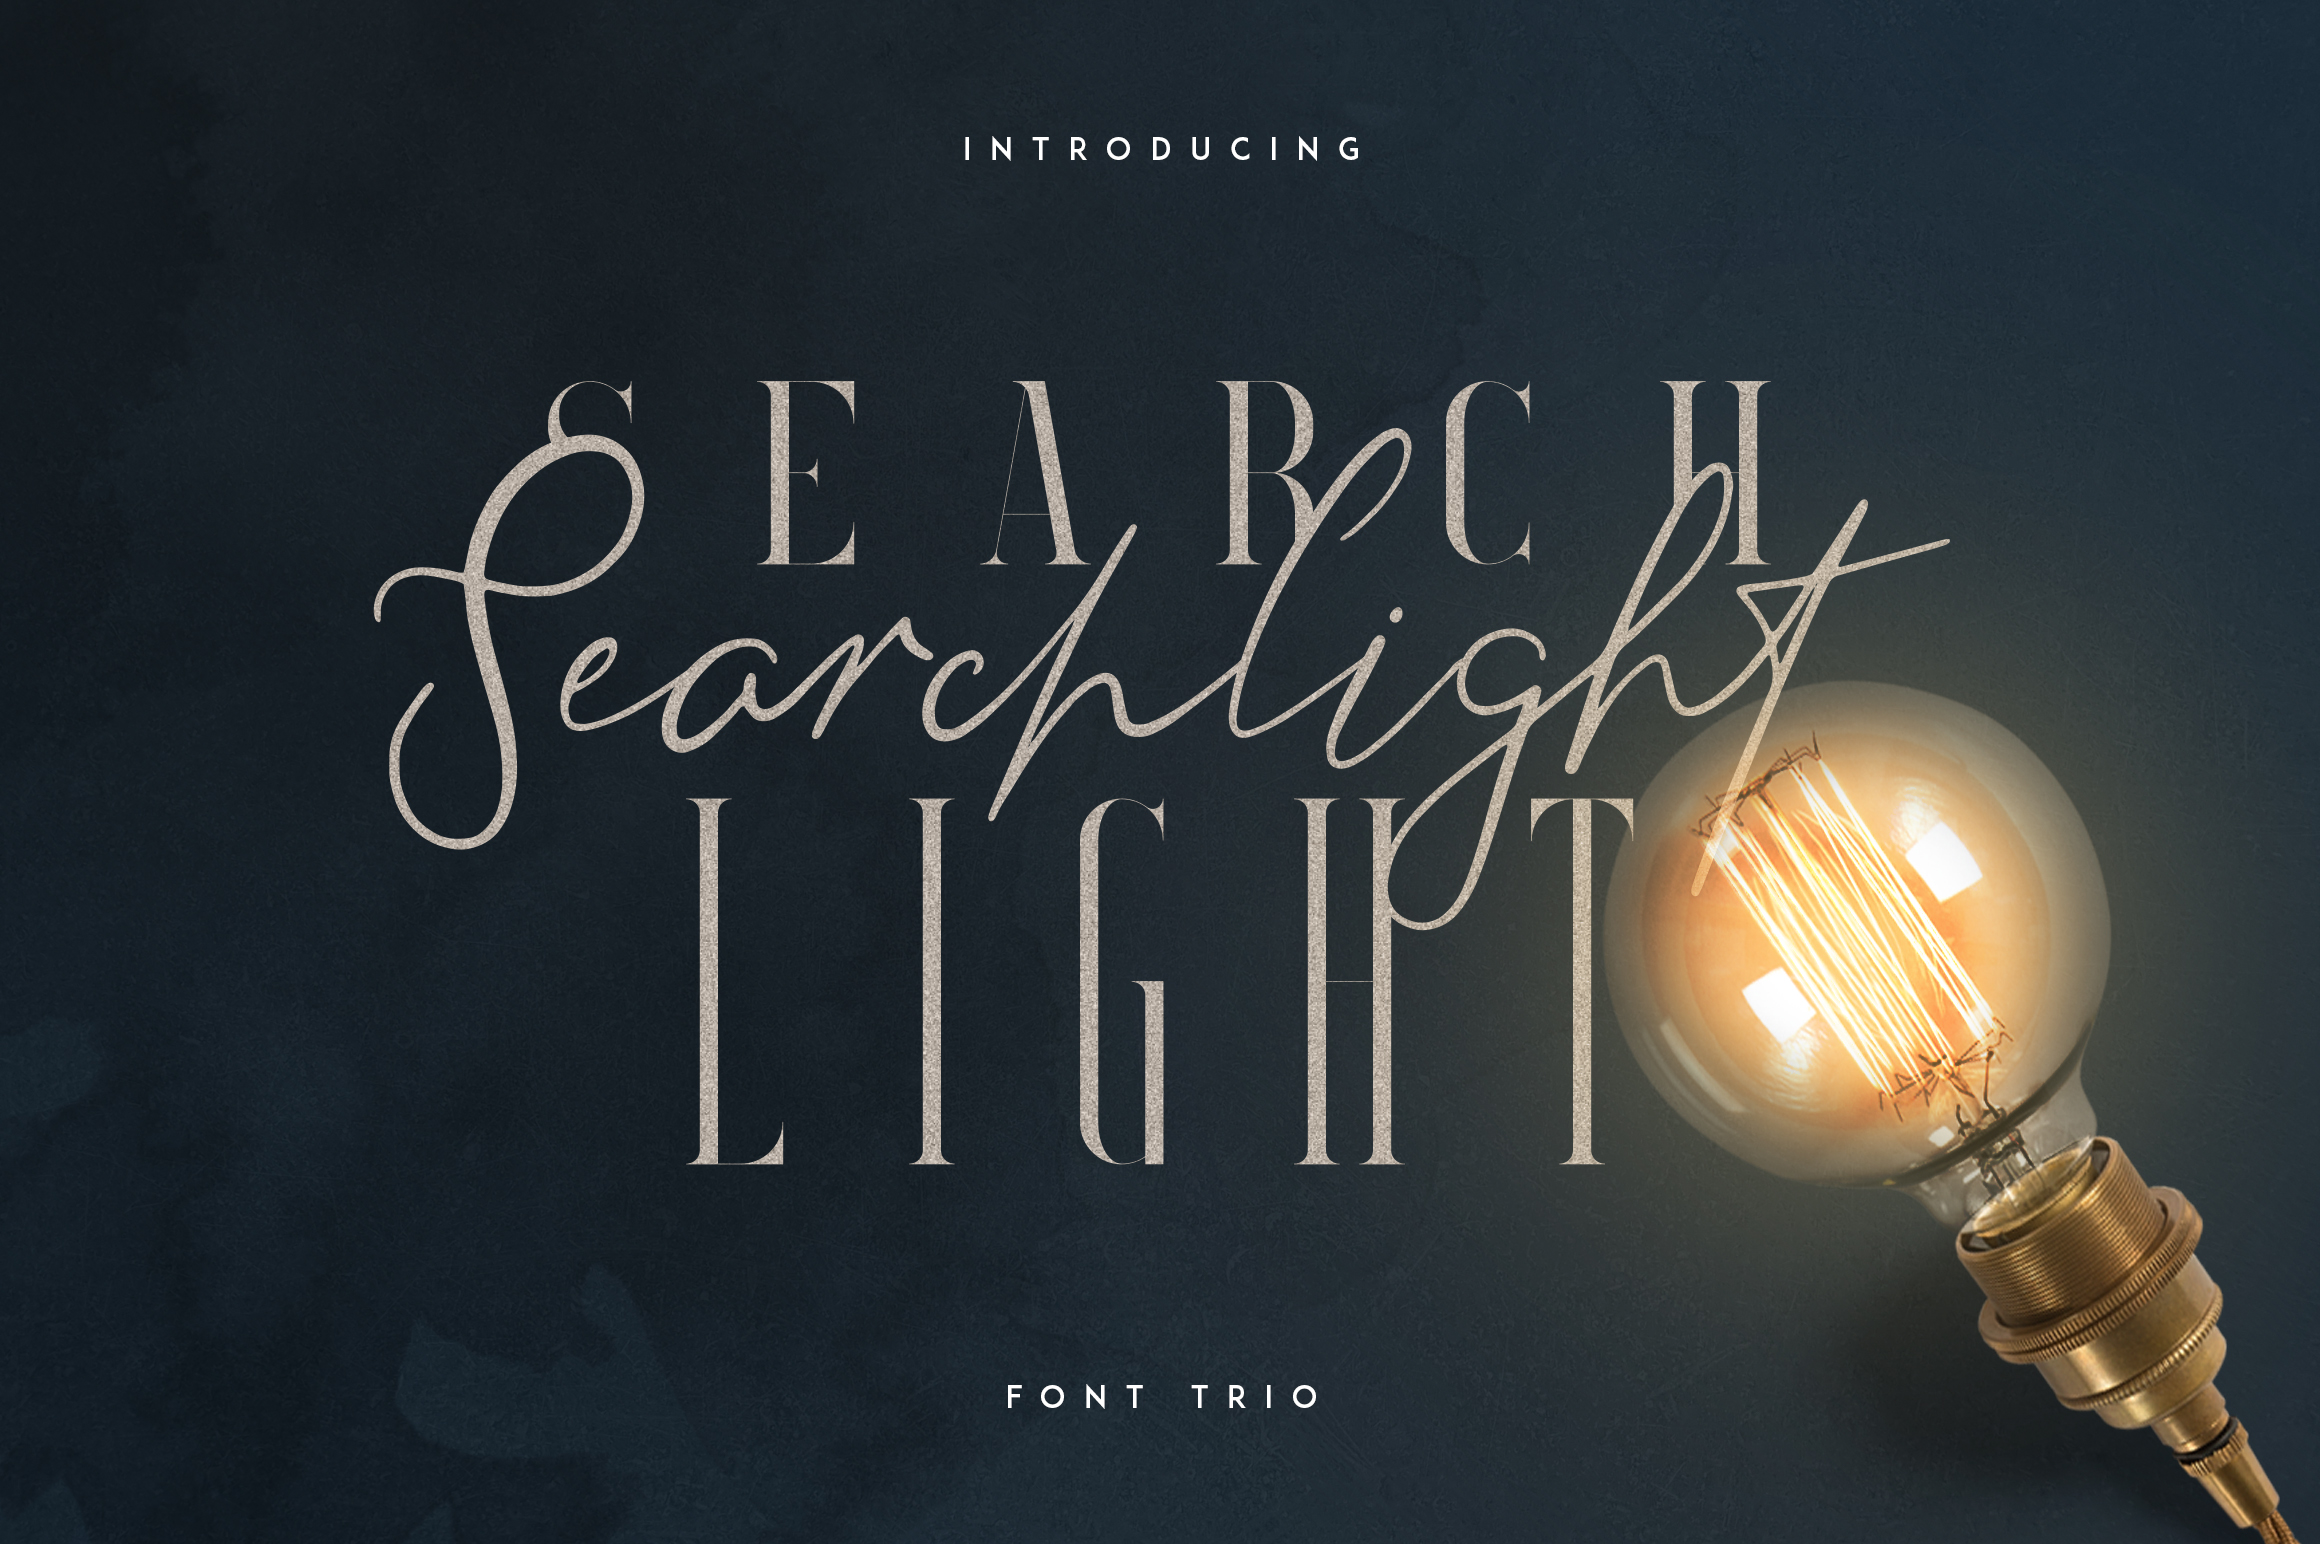 Searchlight - font trio example image 1